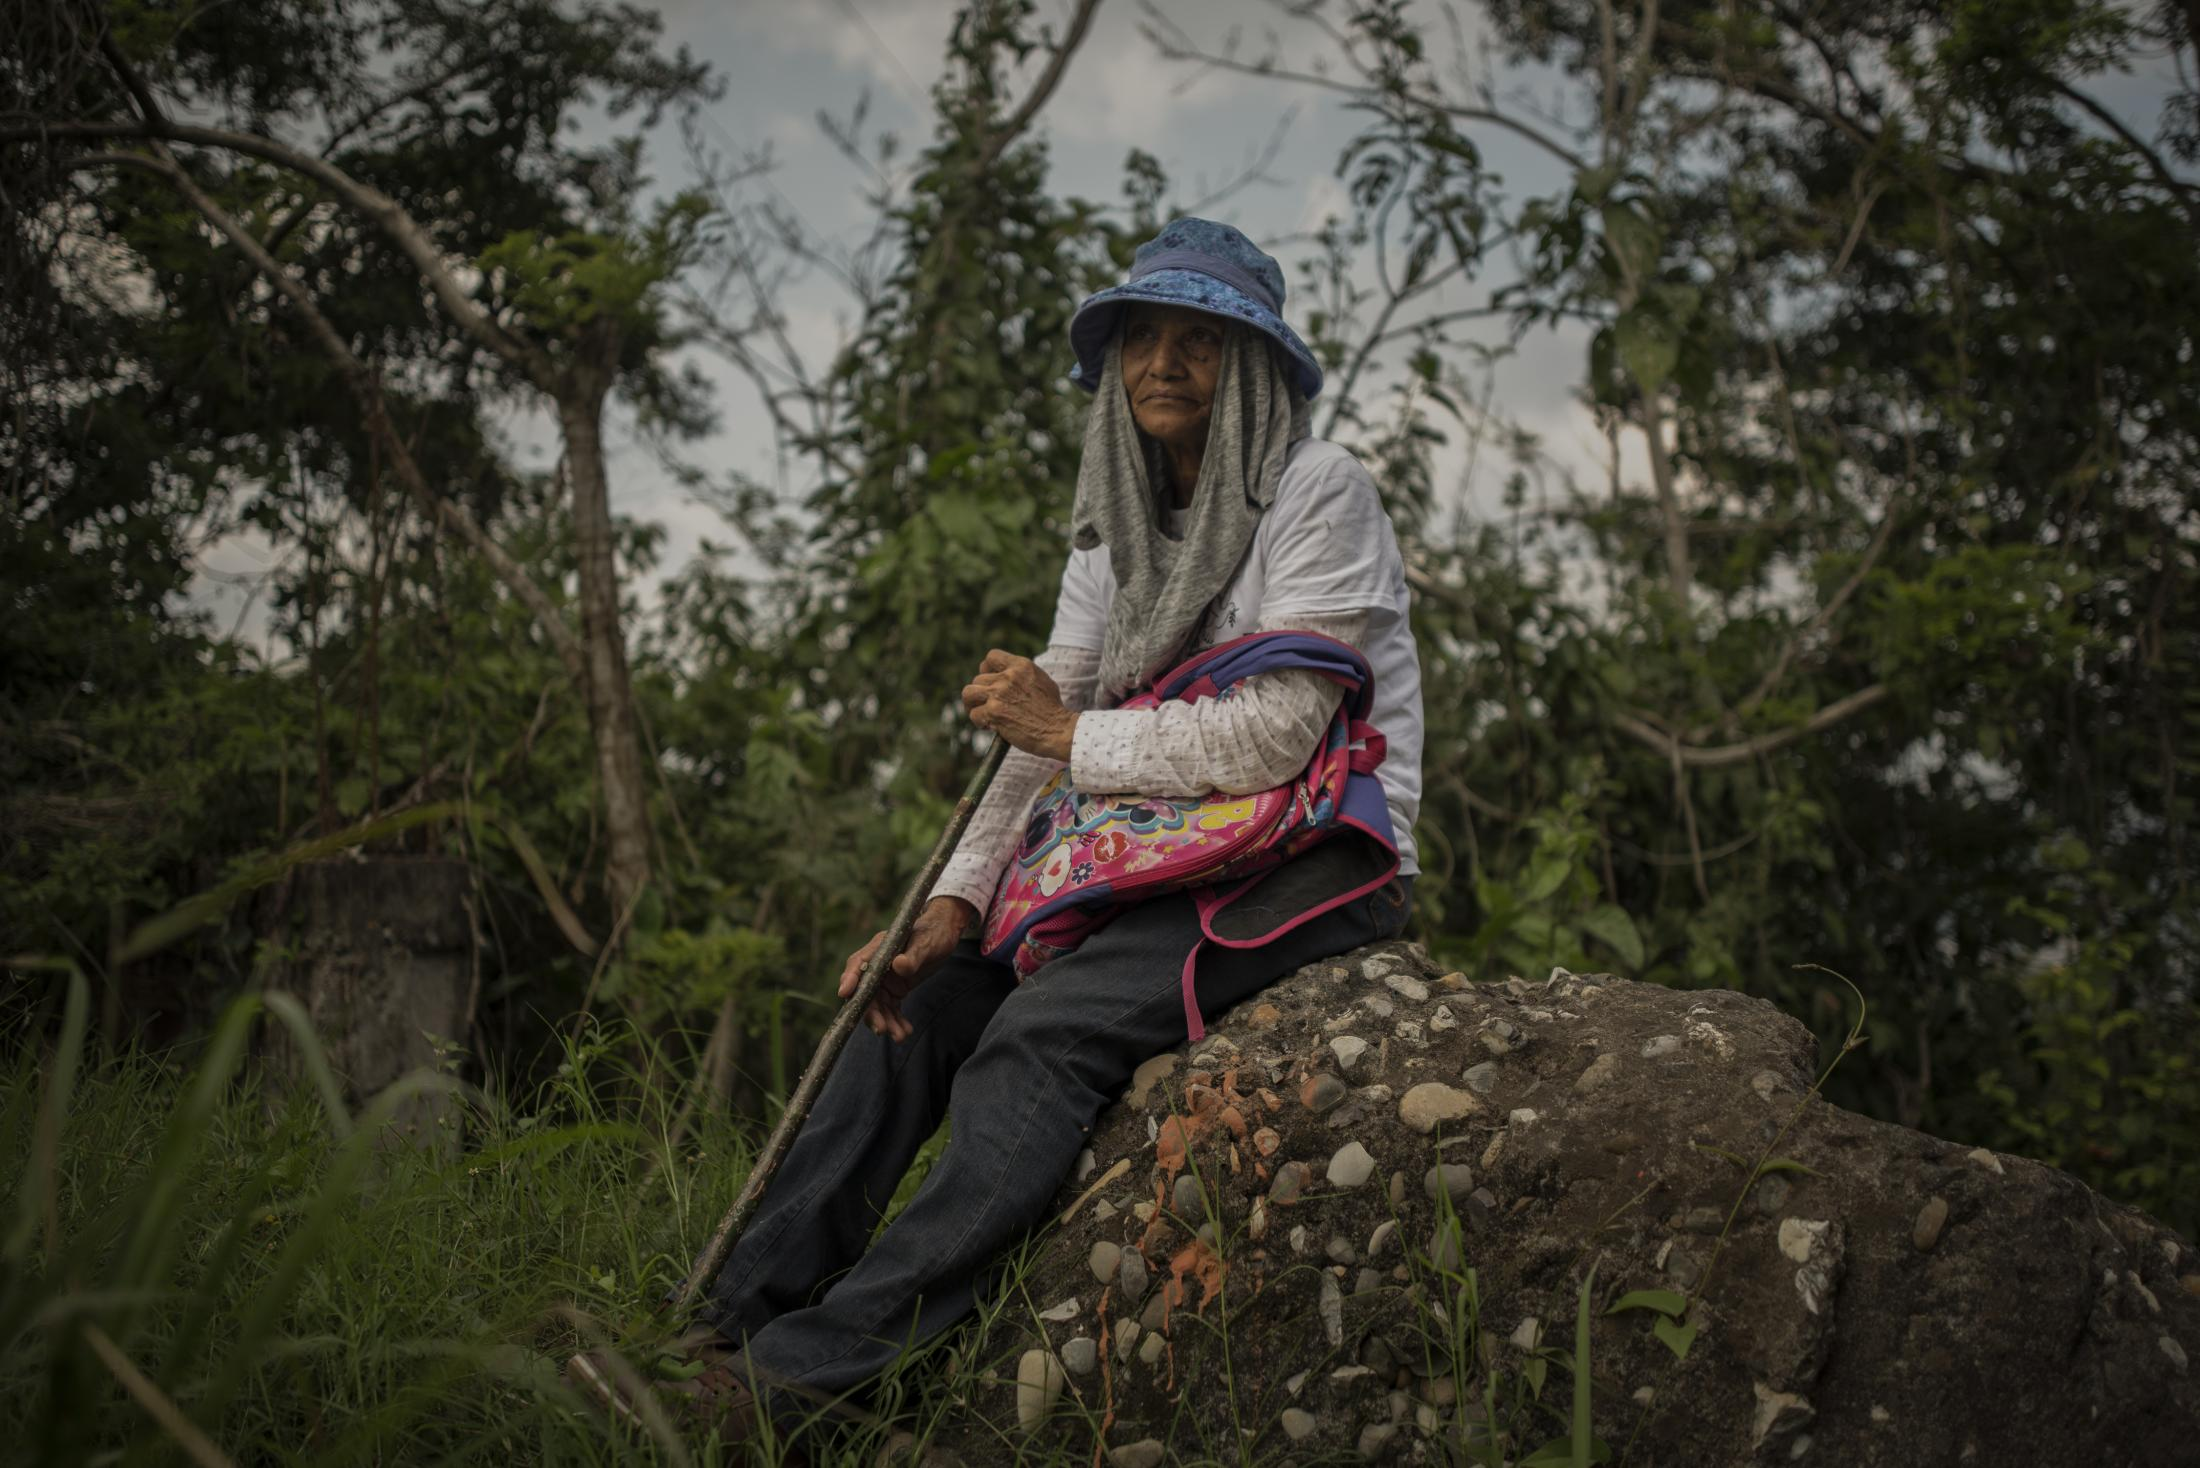 February 20, 2020. Tihuatlan, Veracruz, Mexico. Antonia Cota, 70, seeker of missing persons from Sinaloa, Mexico, rests on a piece of land that is investigated by police authorities and groups of relatives participating in the fifth National Missing Persons Search Brigade. Victoria Razo / NPR